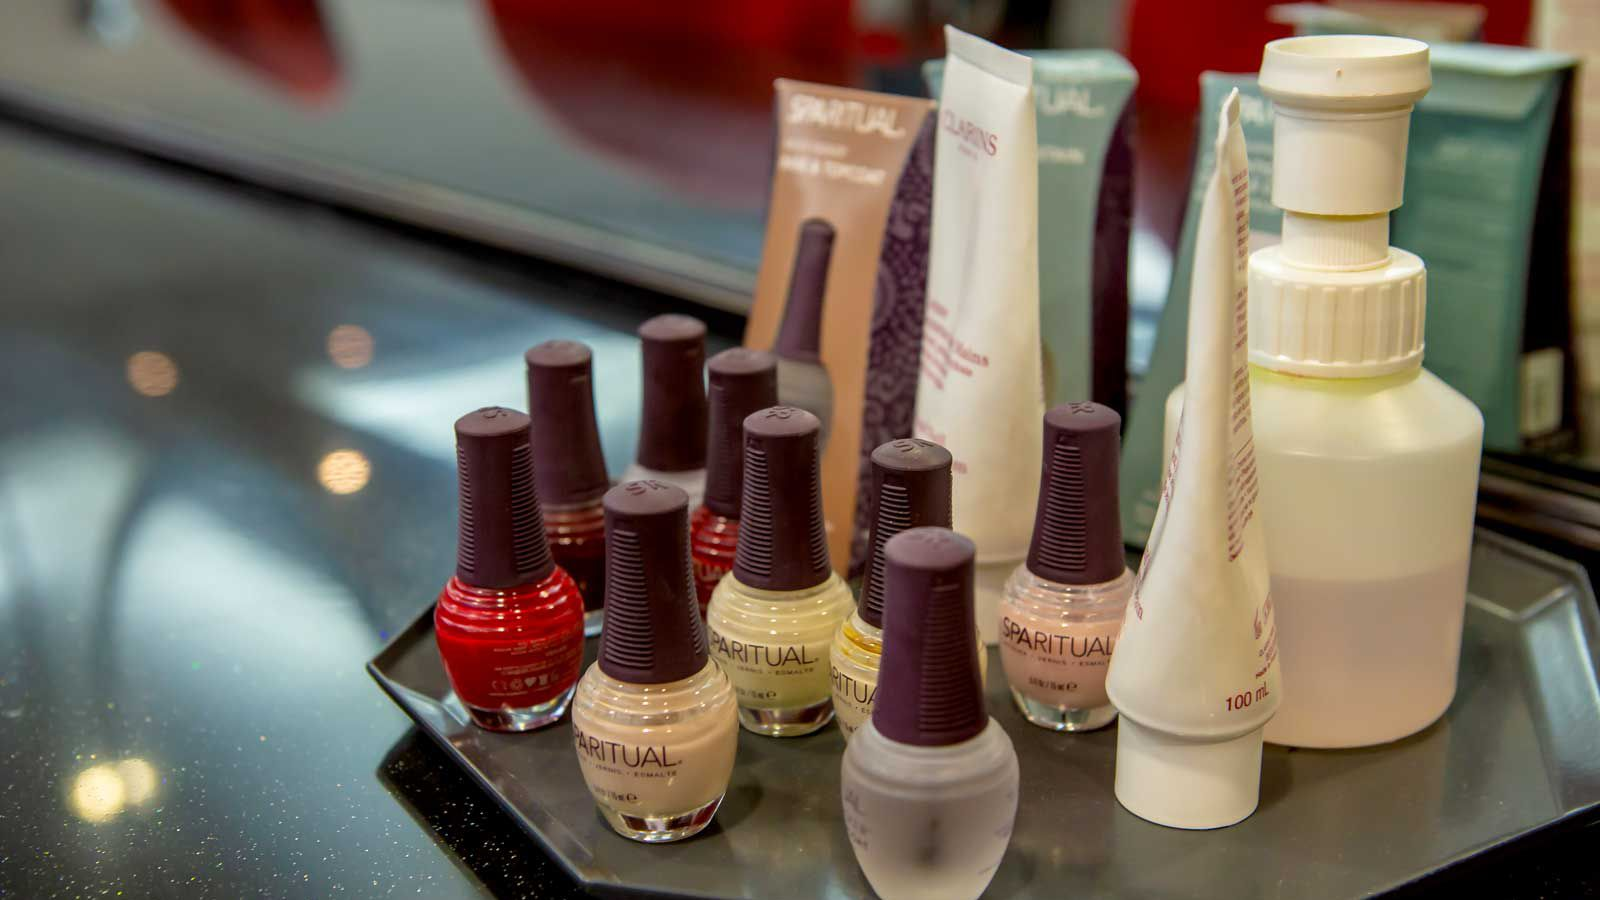 Crew will also find the airline's approved nail polish colors in the room.